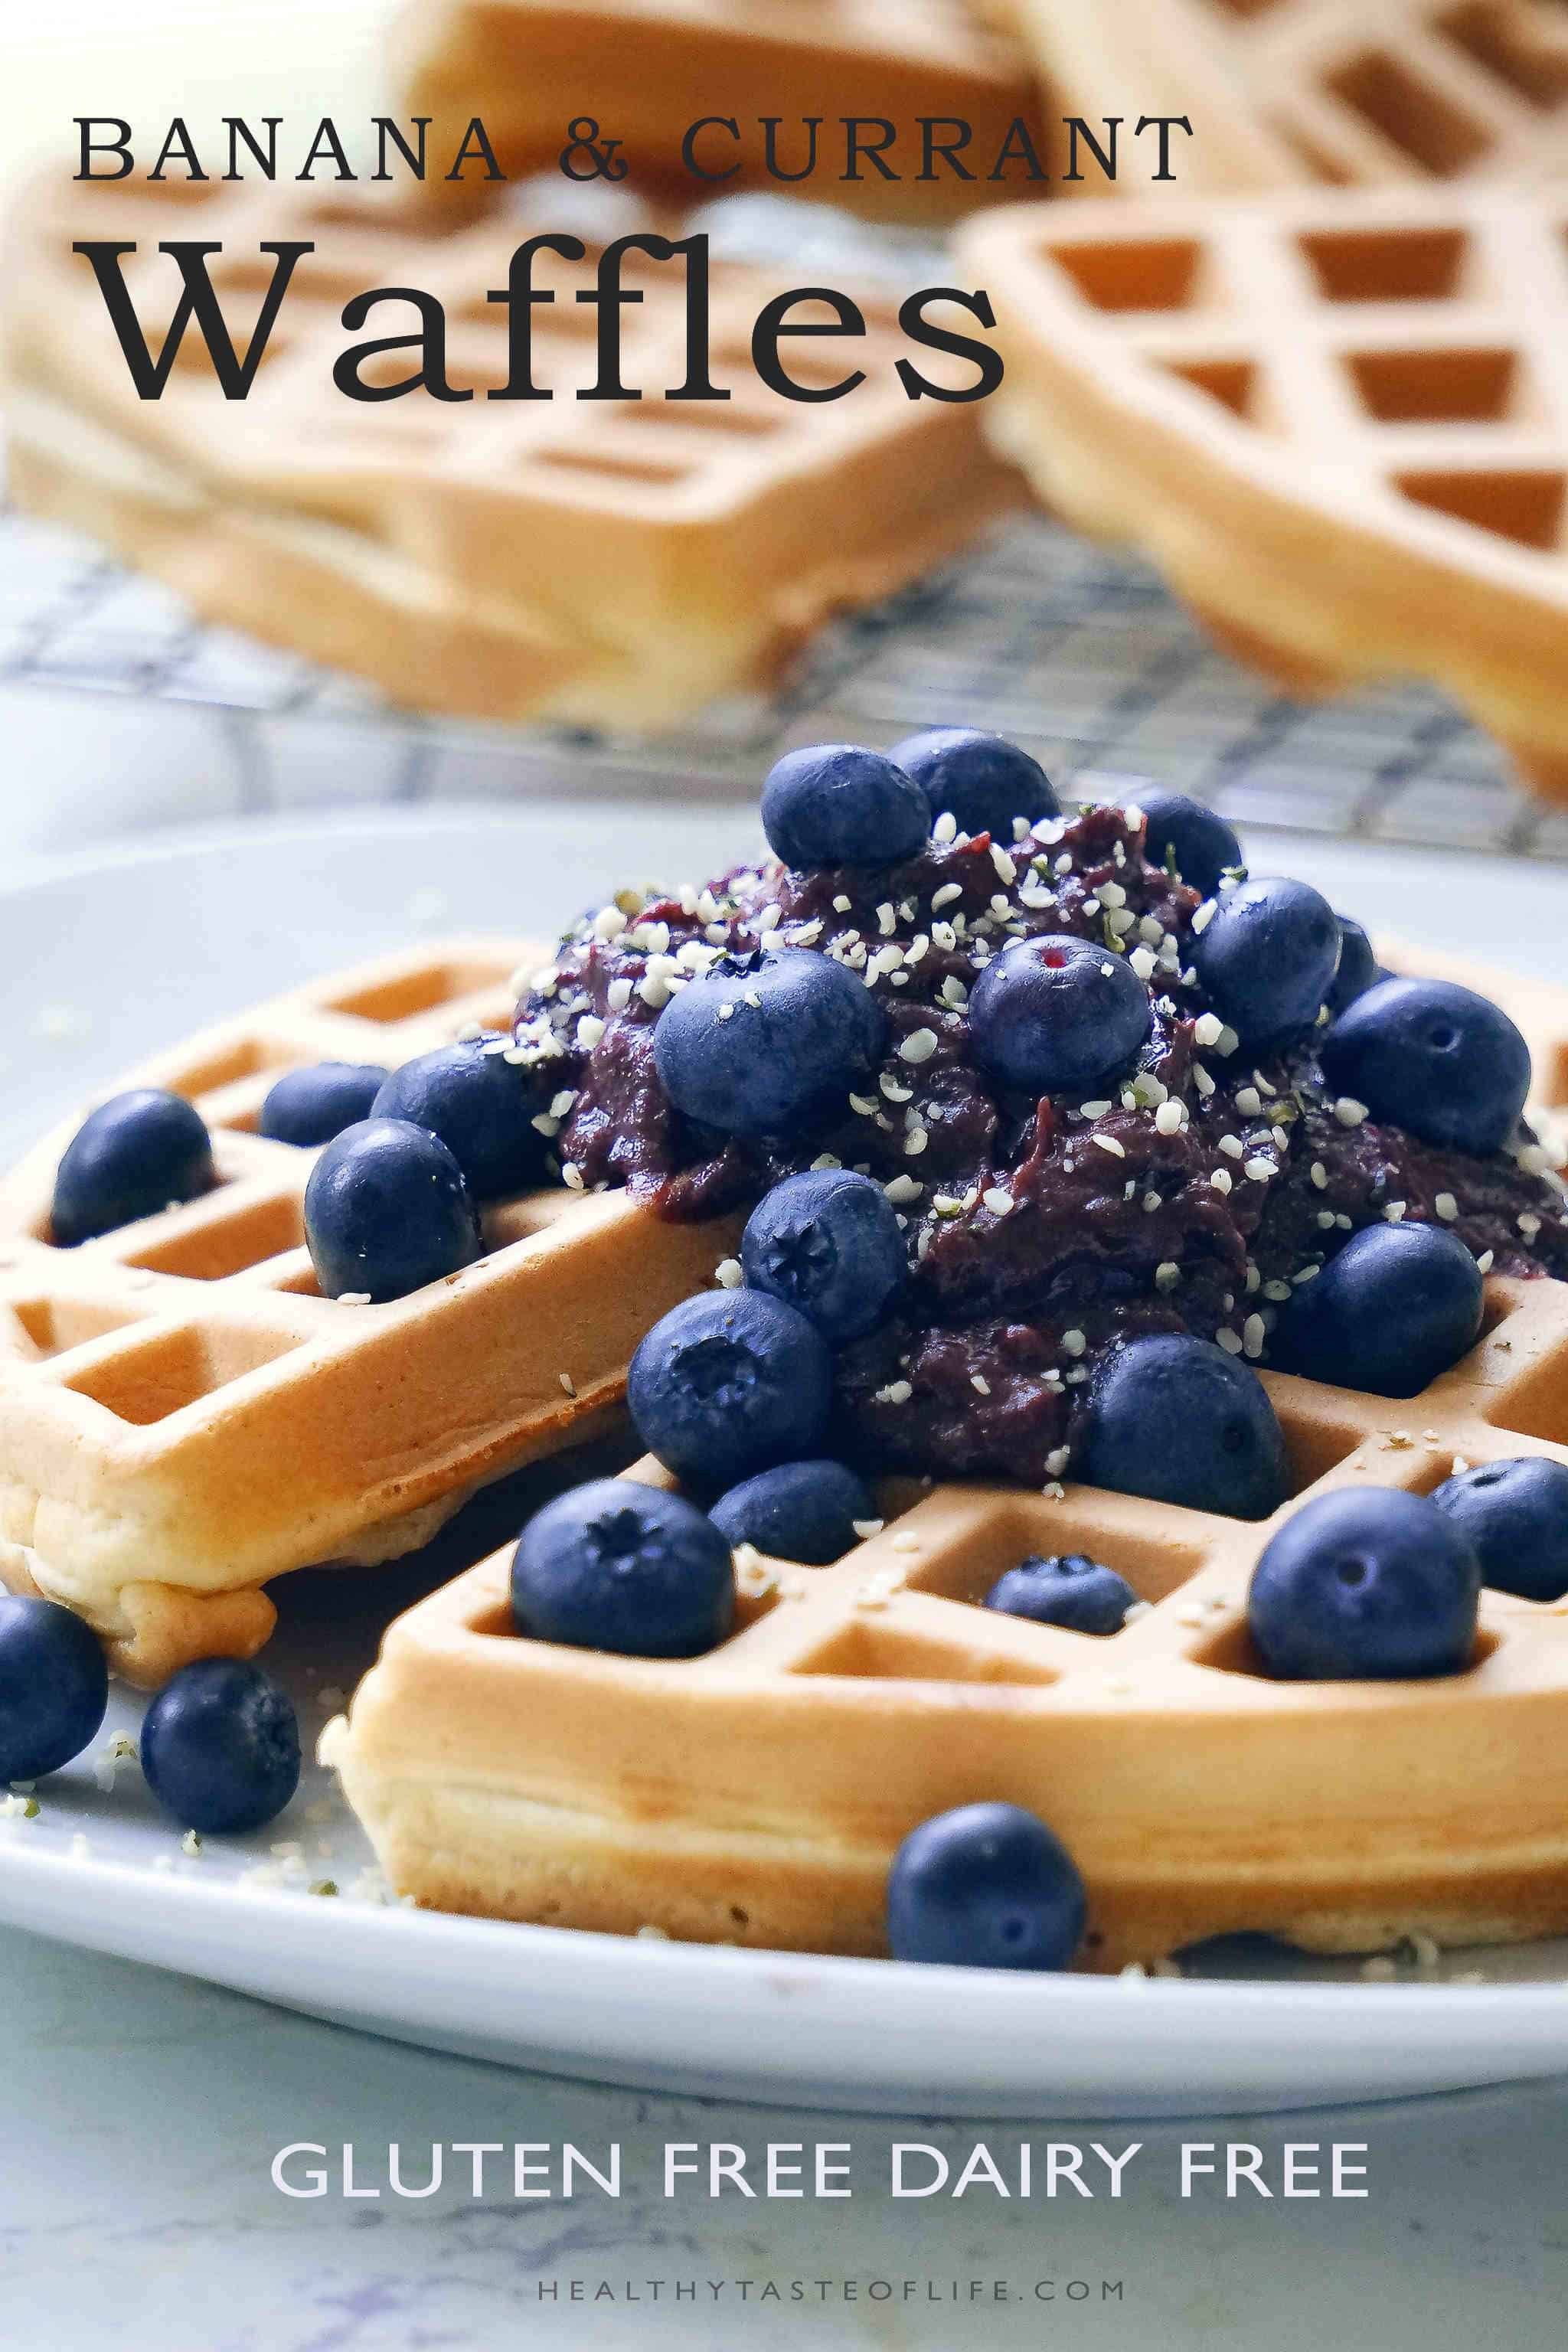 Healthy gluten free banana waffles recipe. These fluffy Belgian waffles are topped with a sweet, dairy free, fruit based cream - the perfect clean eating (banana flavored) breakfast.